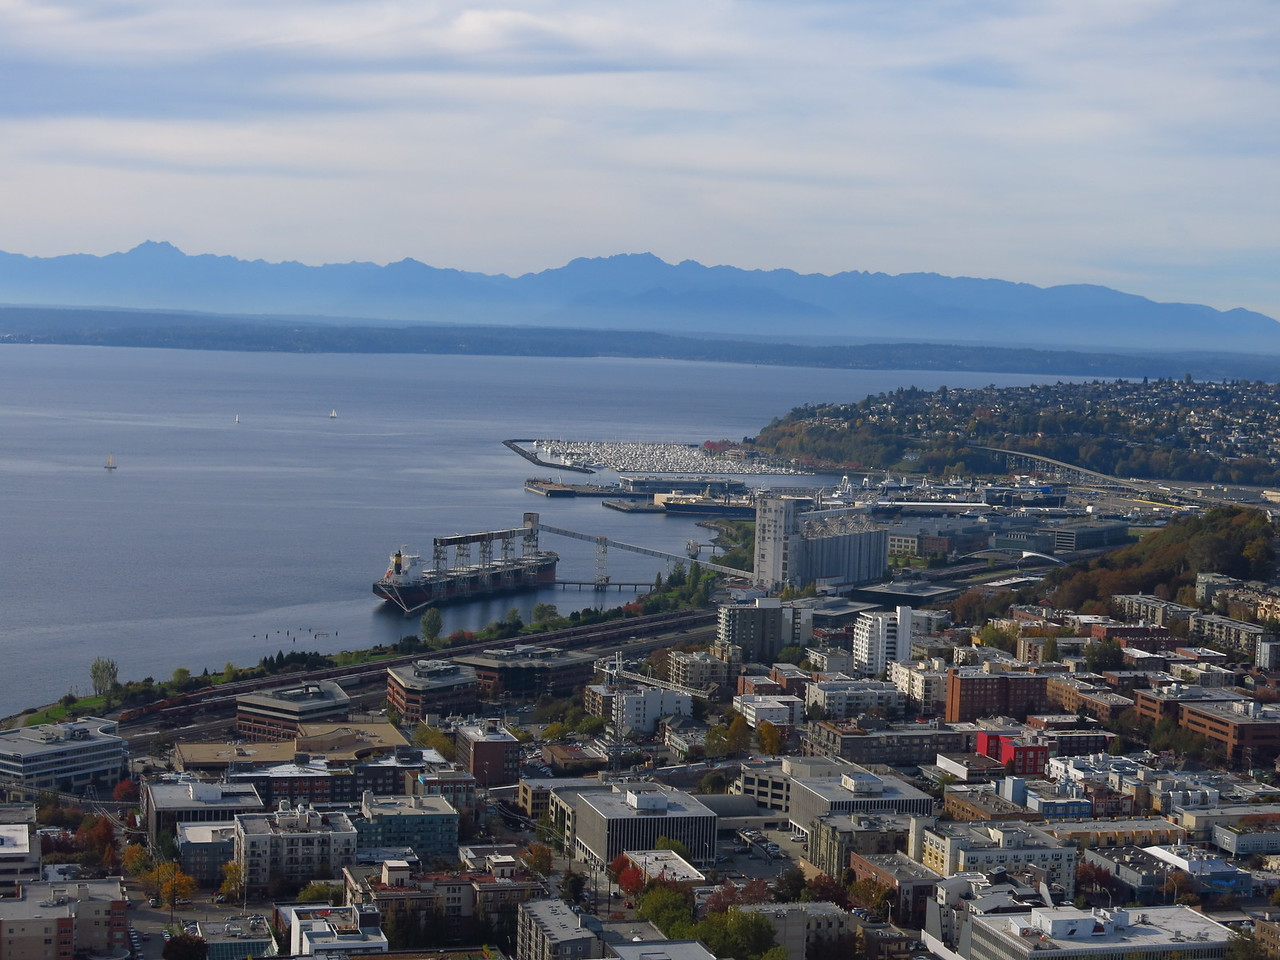 Wider view of WNW:  Elliott Bay and Olympic Mountains in the distance